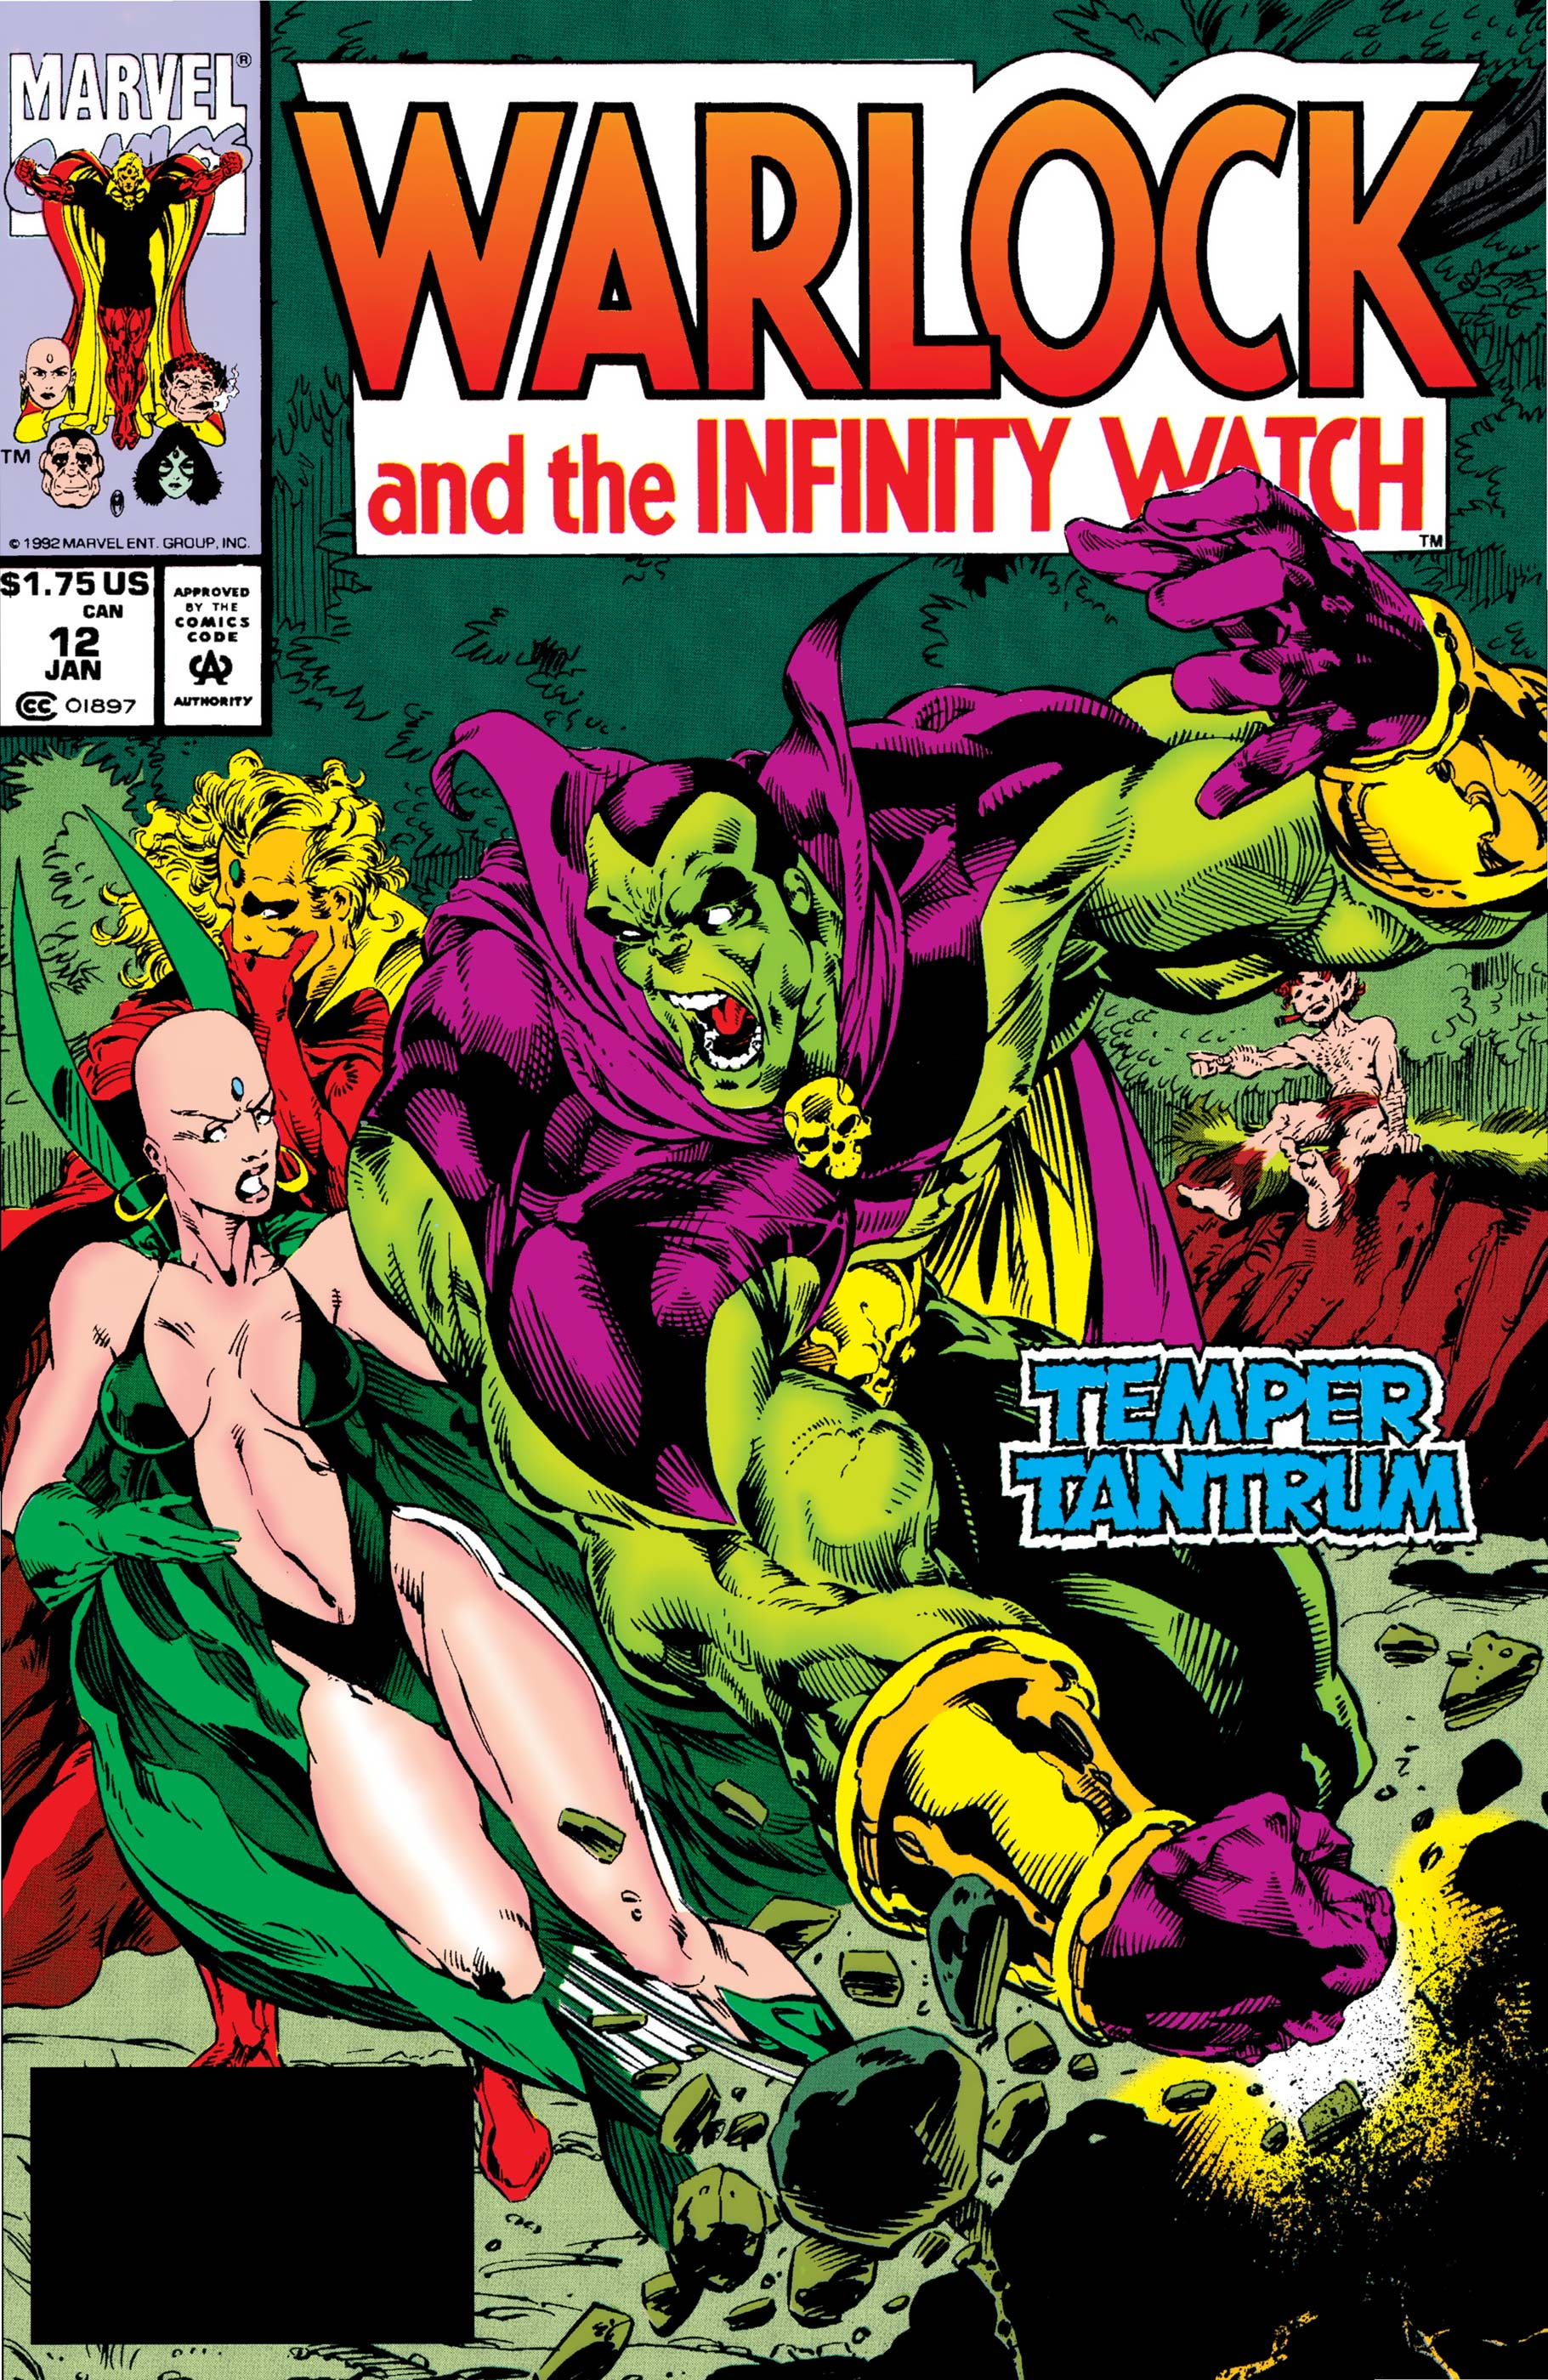 Warlock and the Infinity Watch (1992) #12